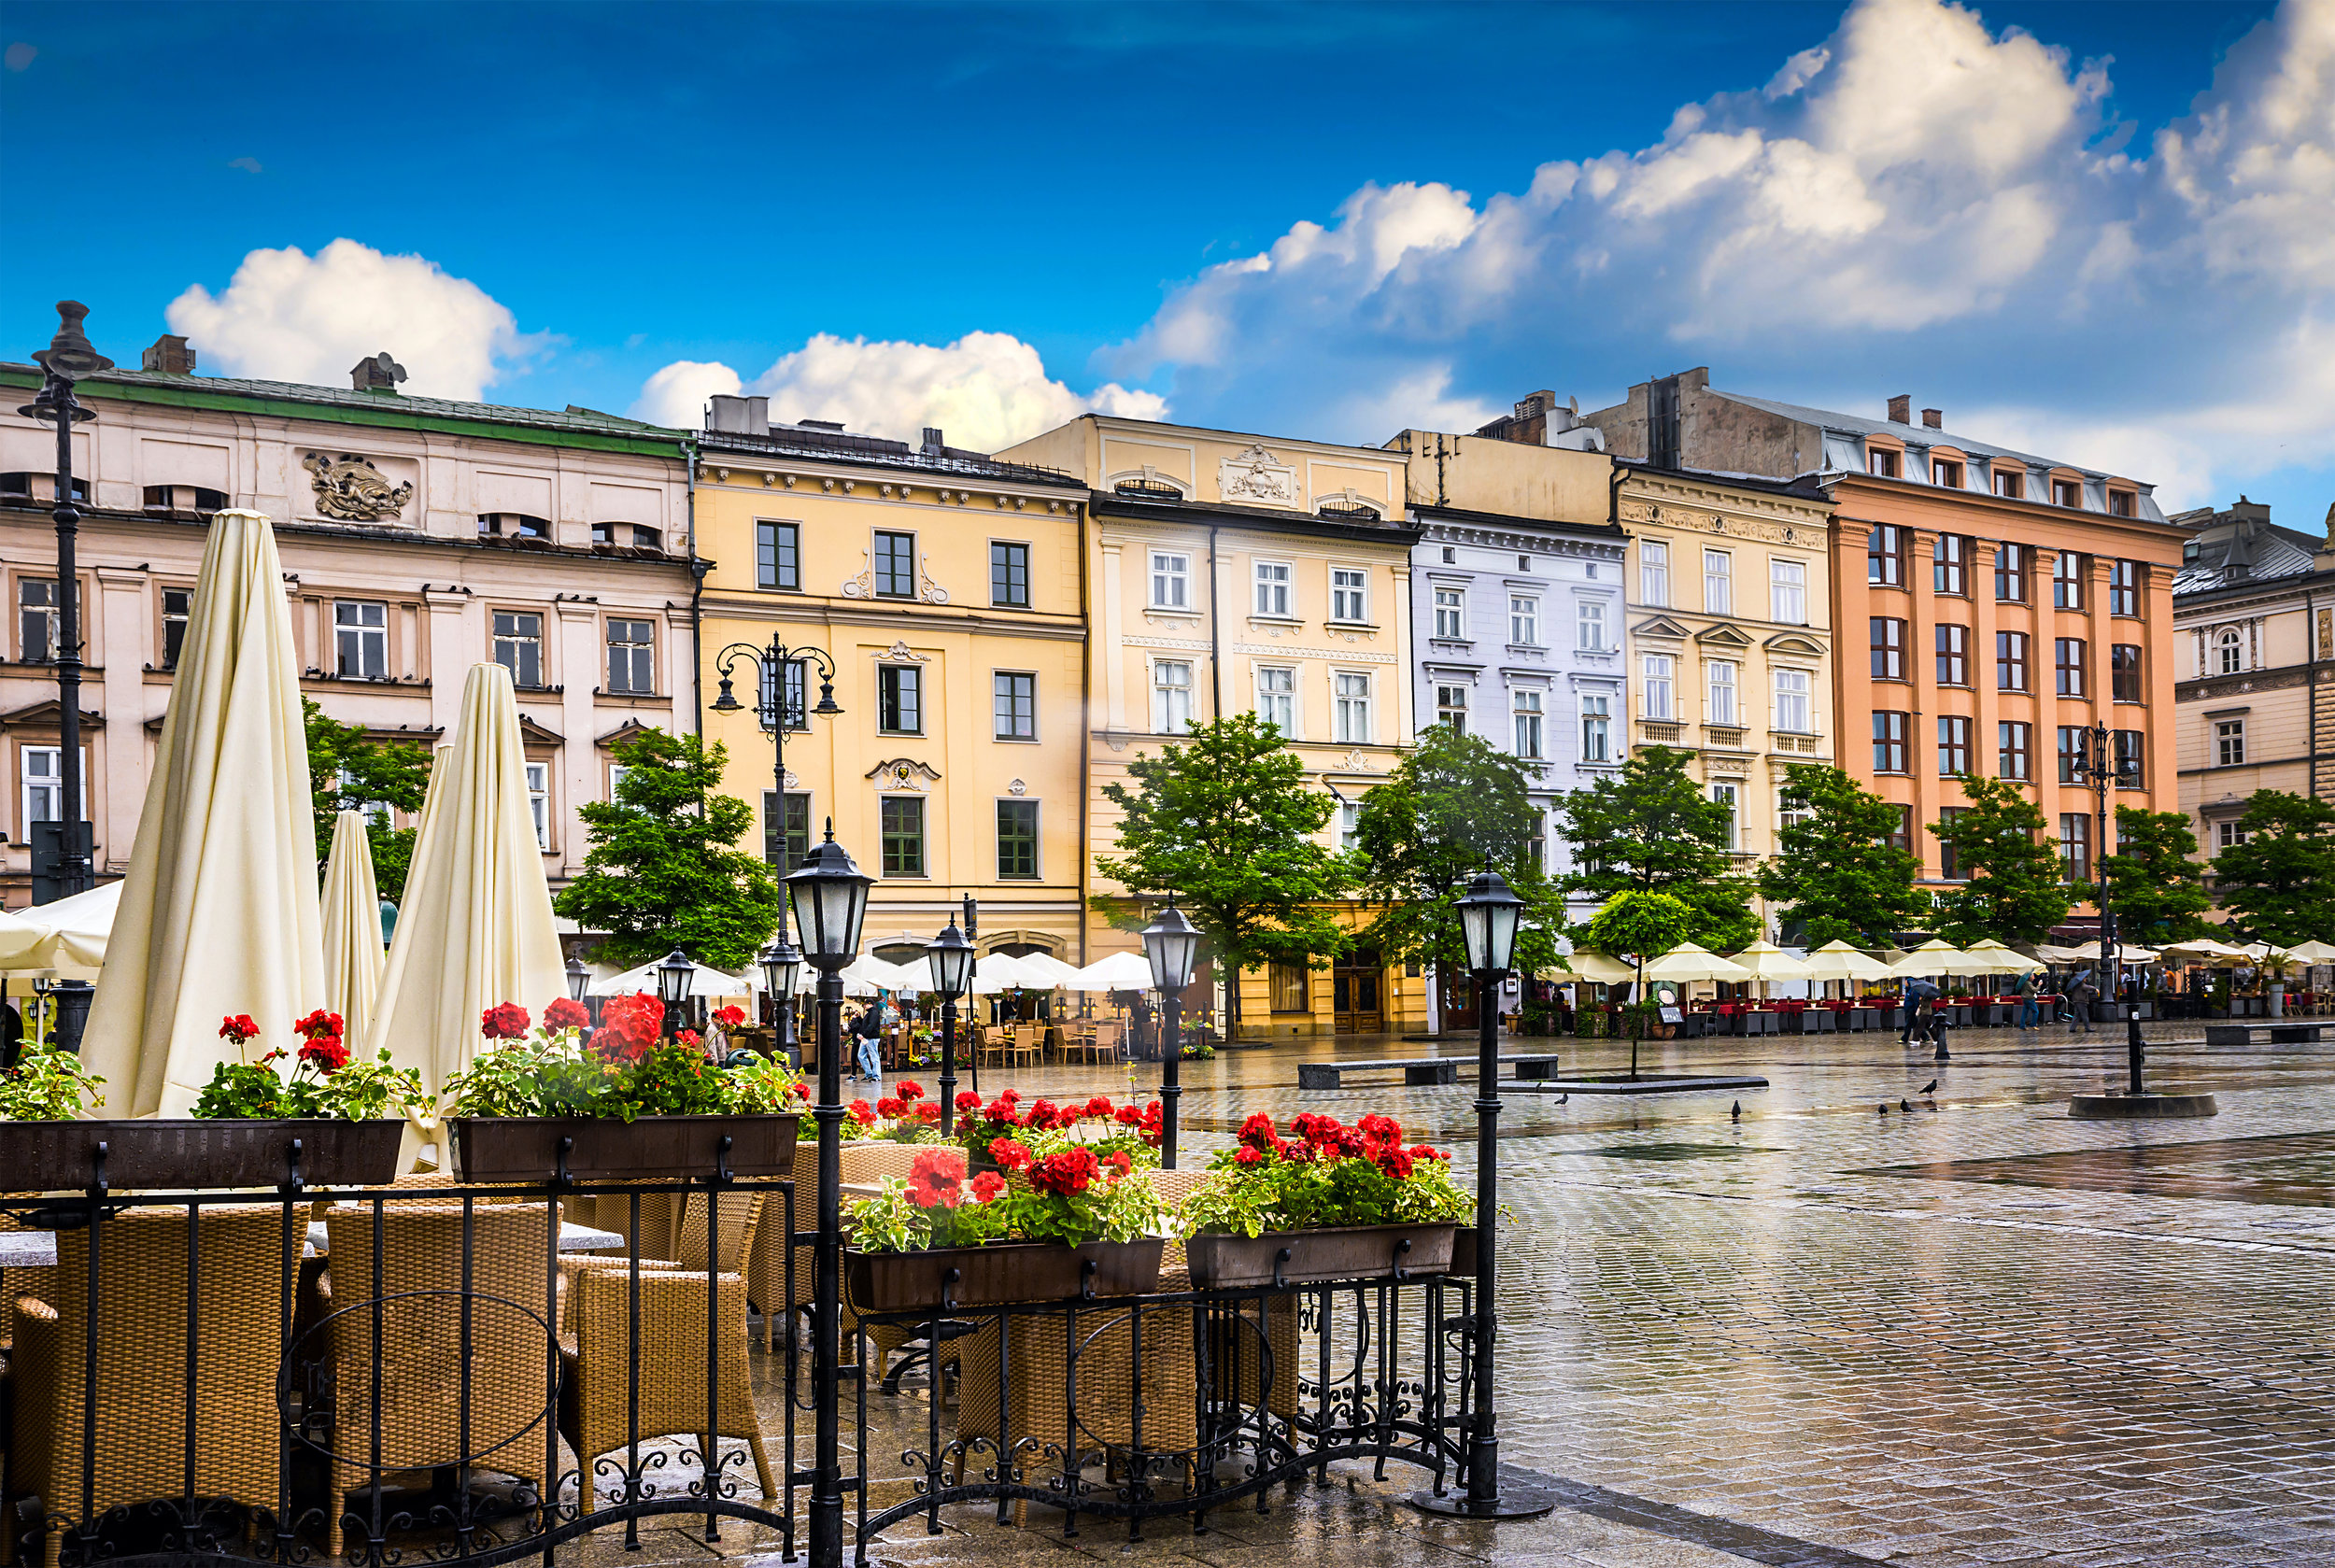 Krakow - Poland's historic center, a city with ancient architecture.jpg